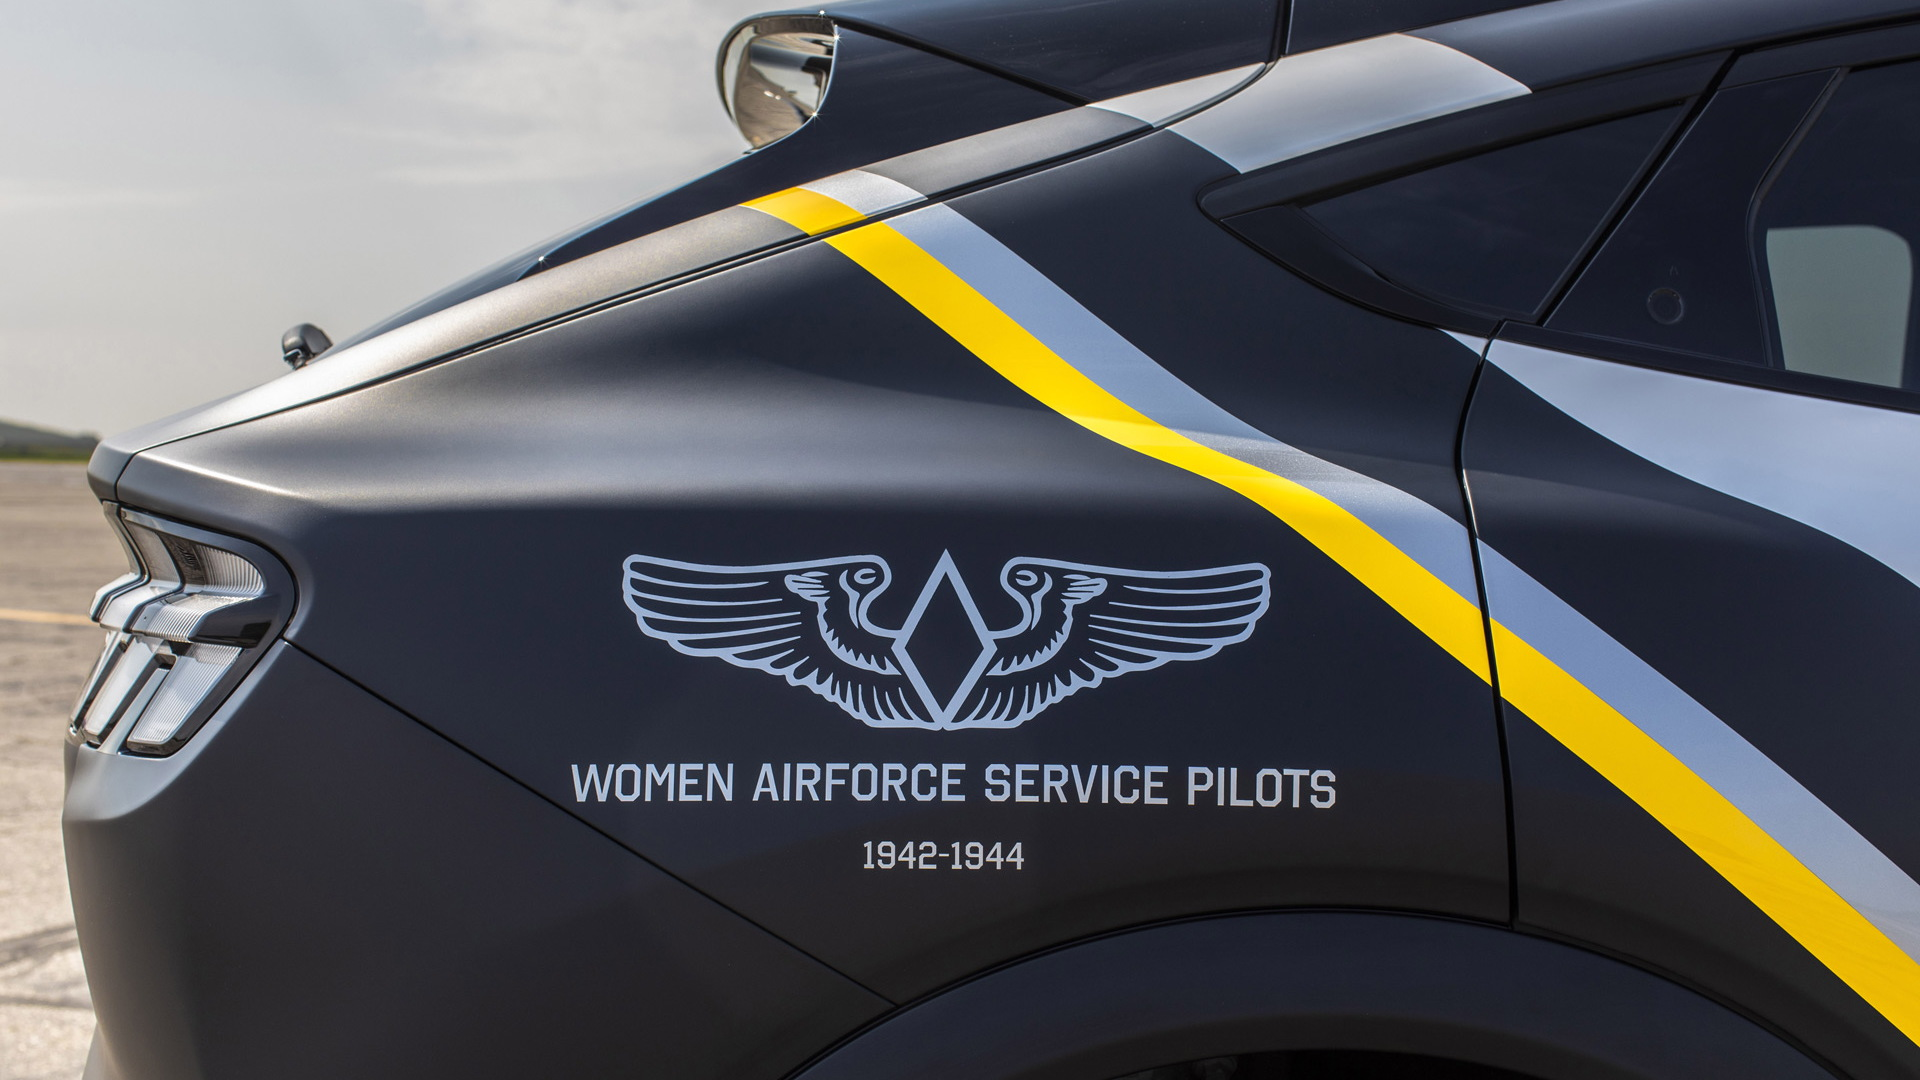 Women Airforce Service Pilots 2021 Ford Mustang Mach-E